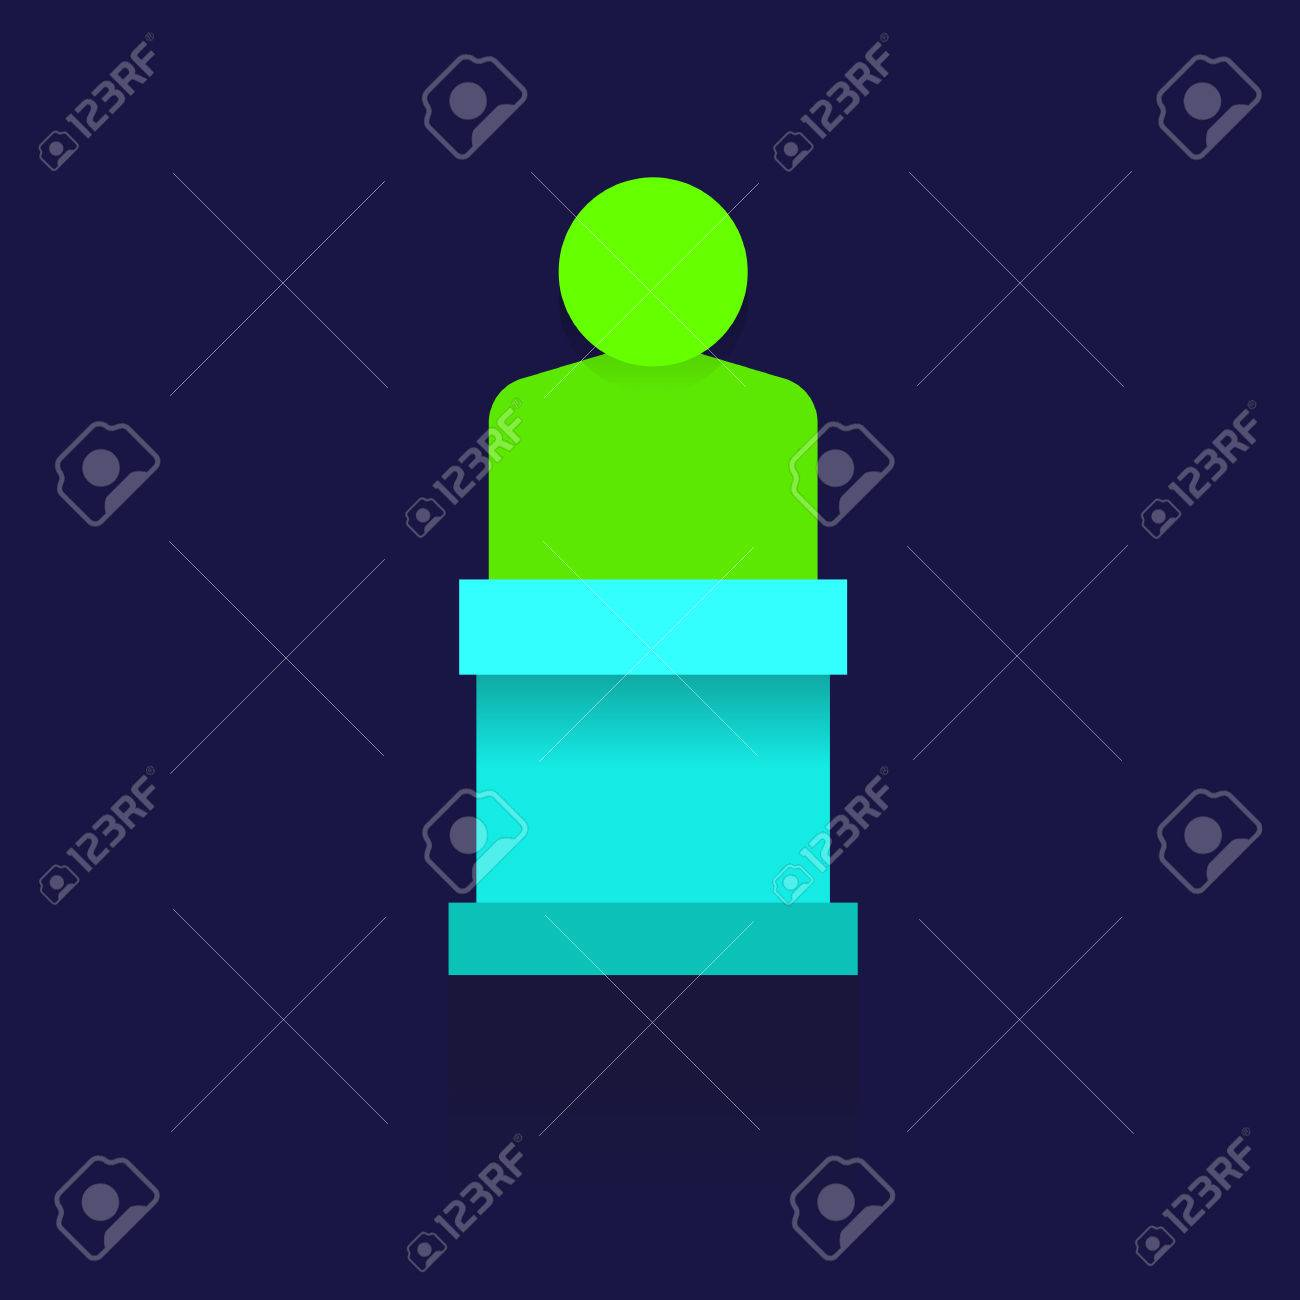 Icon Man In Circle Blue On Blue Background Logo Symbols Business